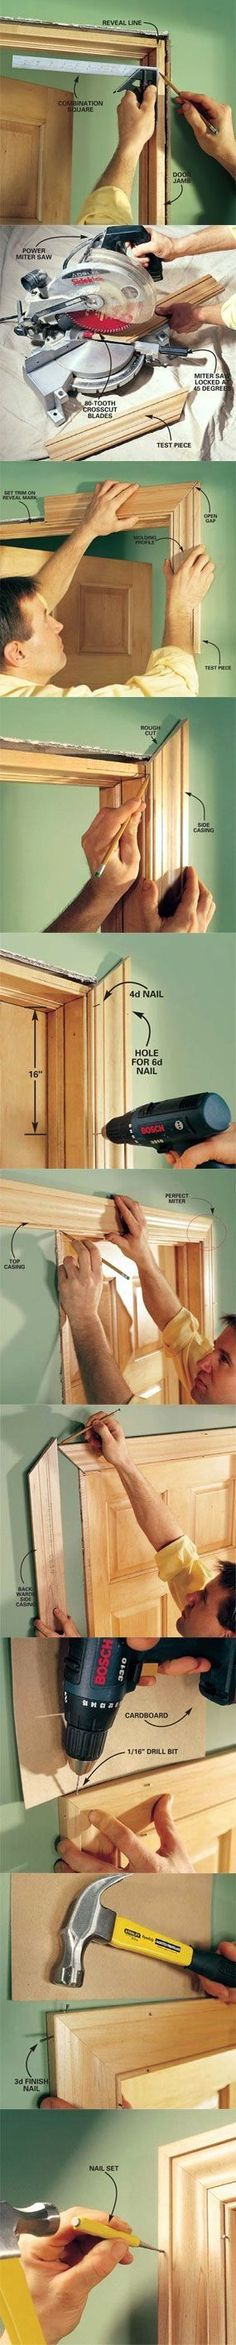 We show you how to make crisp, sharp corners and tight joints when installing door trim. With a few basic carpentry tools and a little patience, you can trim out a door quickly. With a little practice you can master the two key trim techniques, mitering and coping. Learn how to trim out a door at http://www.familyhandyman.com/DIY-Projects/Trim/Trim-Carpentry/interior-trim-work-basics/View-All #BasicWoodworkingPowerTools